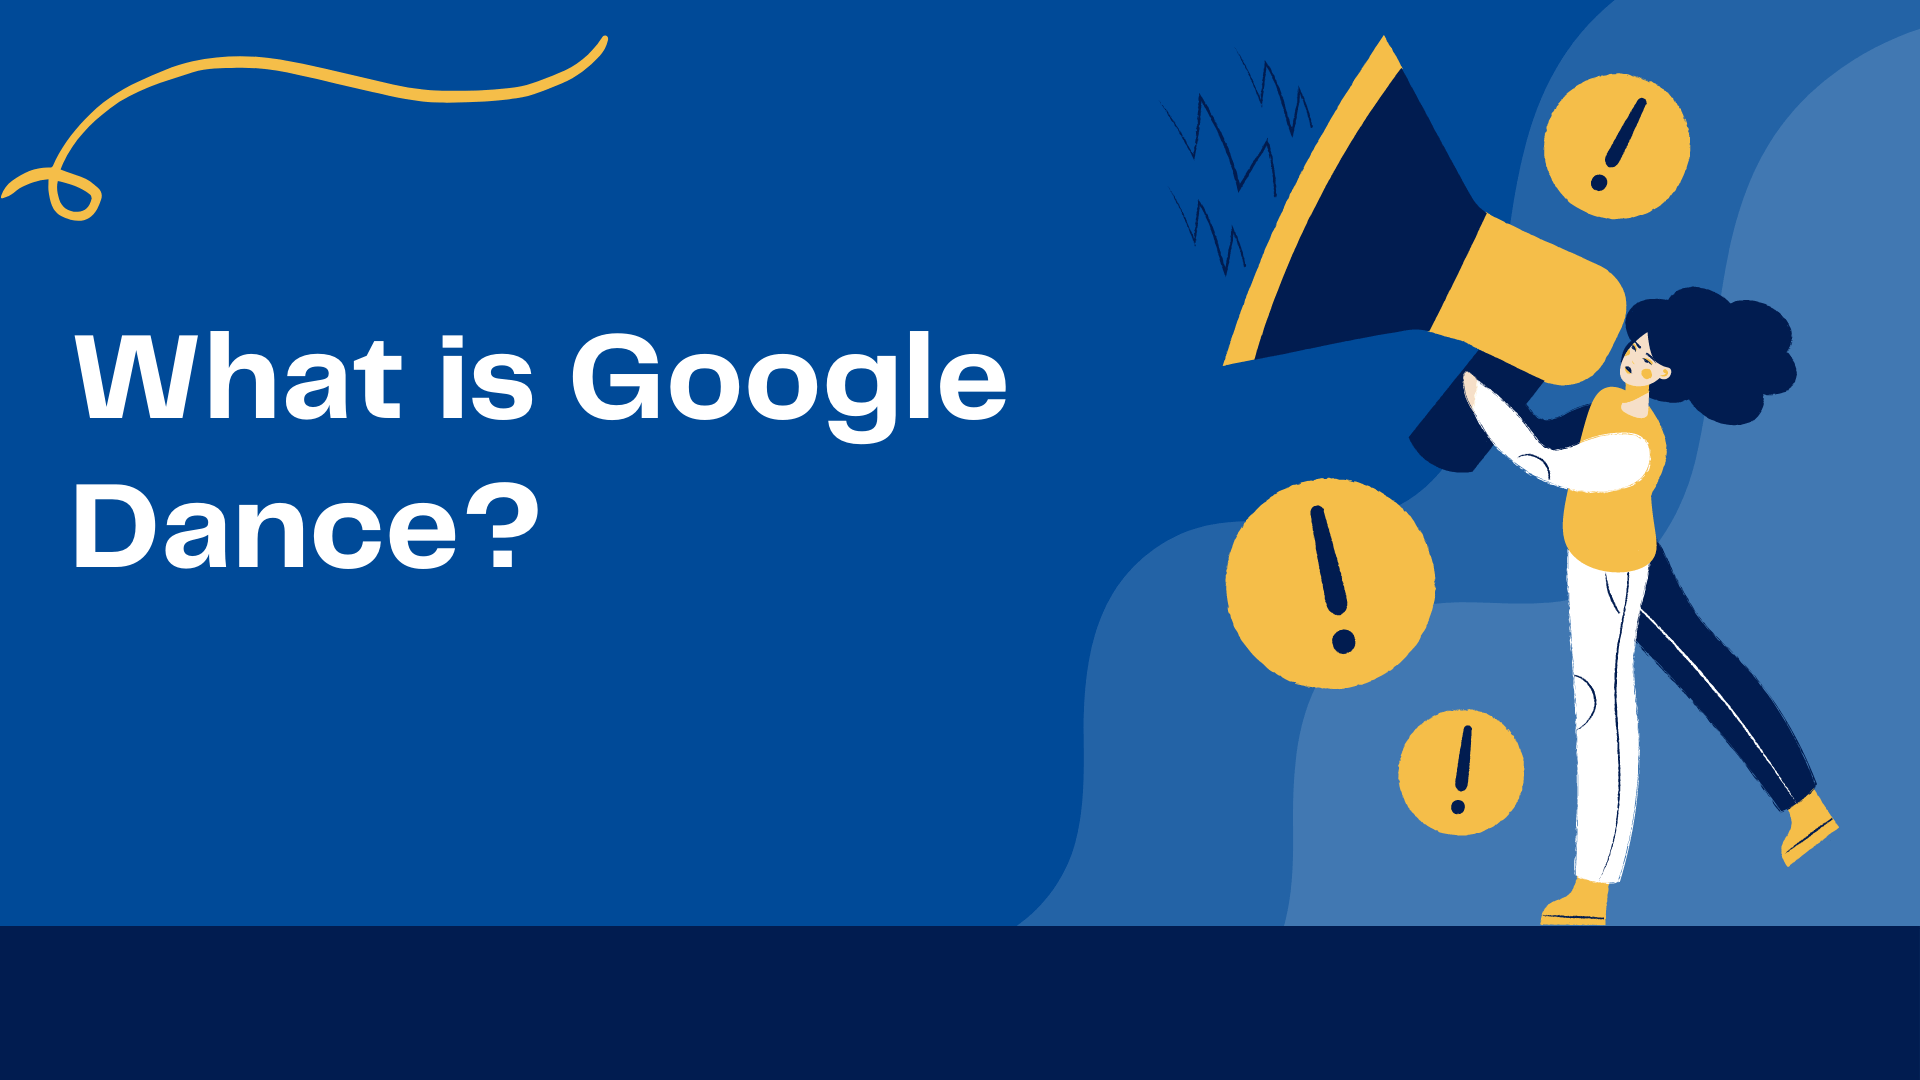 What is Google Dance?